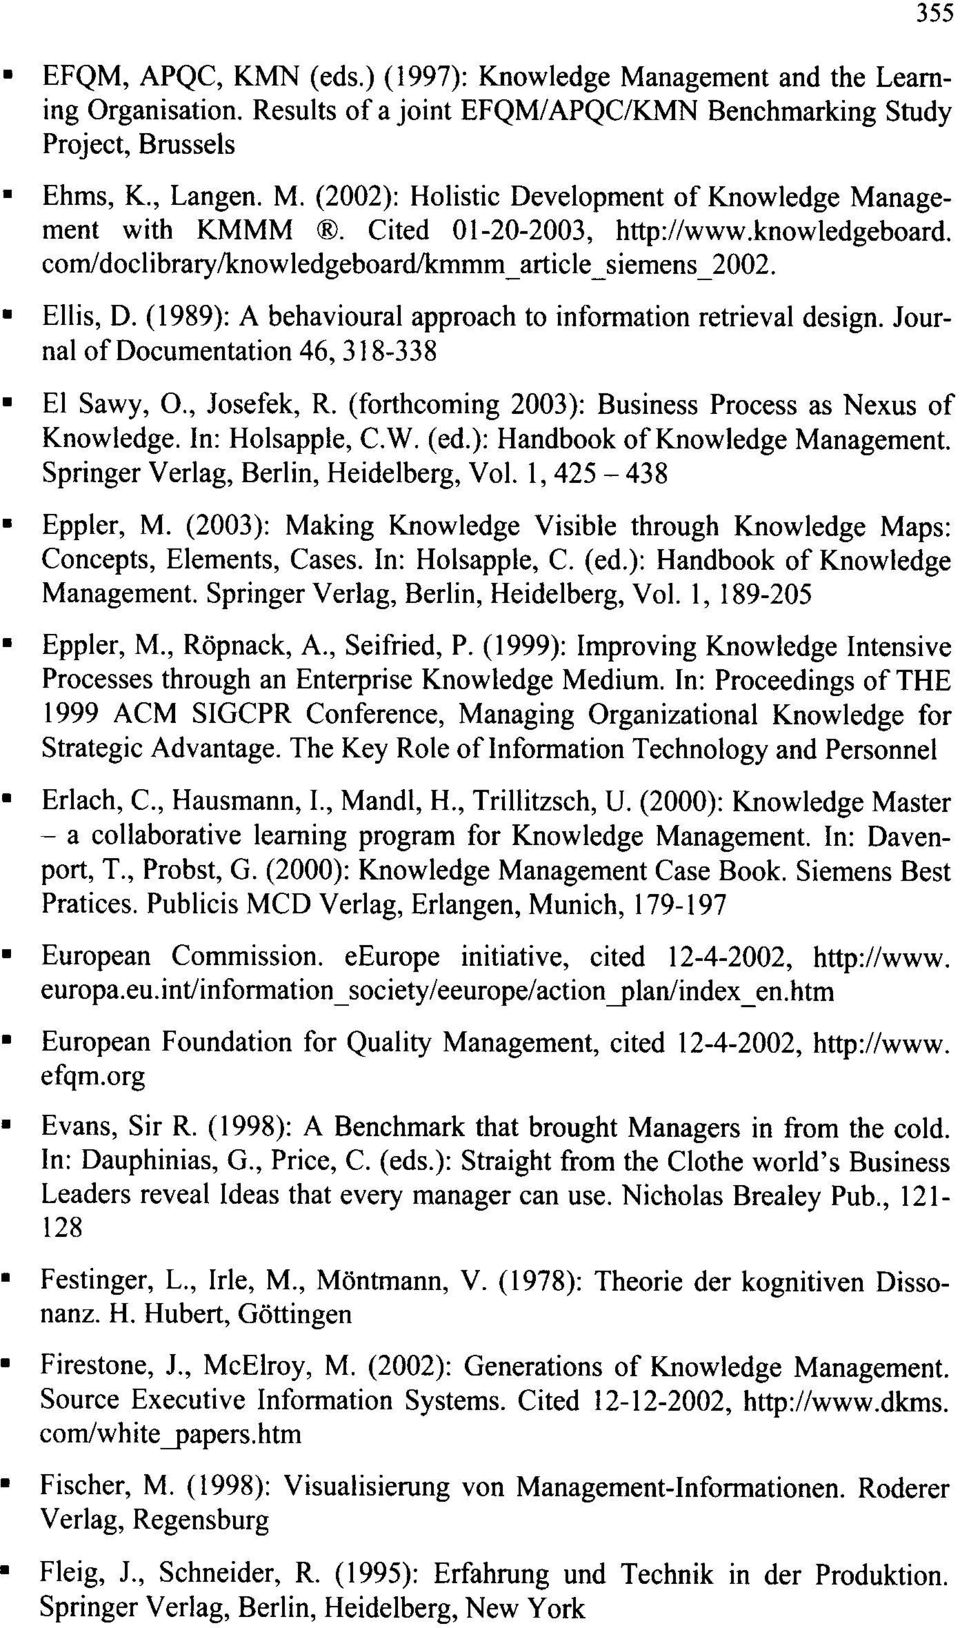 Journal of Documentation 46,318-338 EI Sawy, 0., Josefek, R. (forthcoming 2003): Business Process as Nexus of Knowledge. In: Holsapple, C.W. (ed.): Handbook of Knowledge Management.